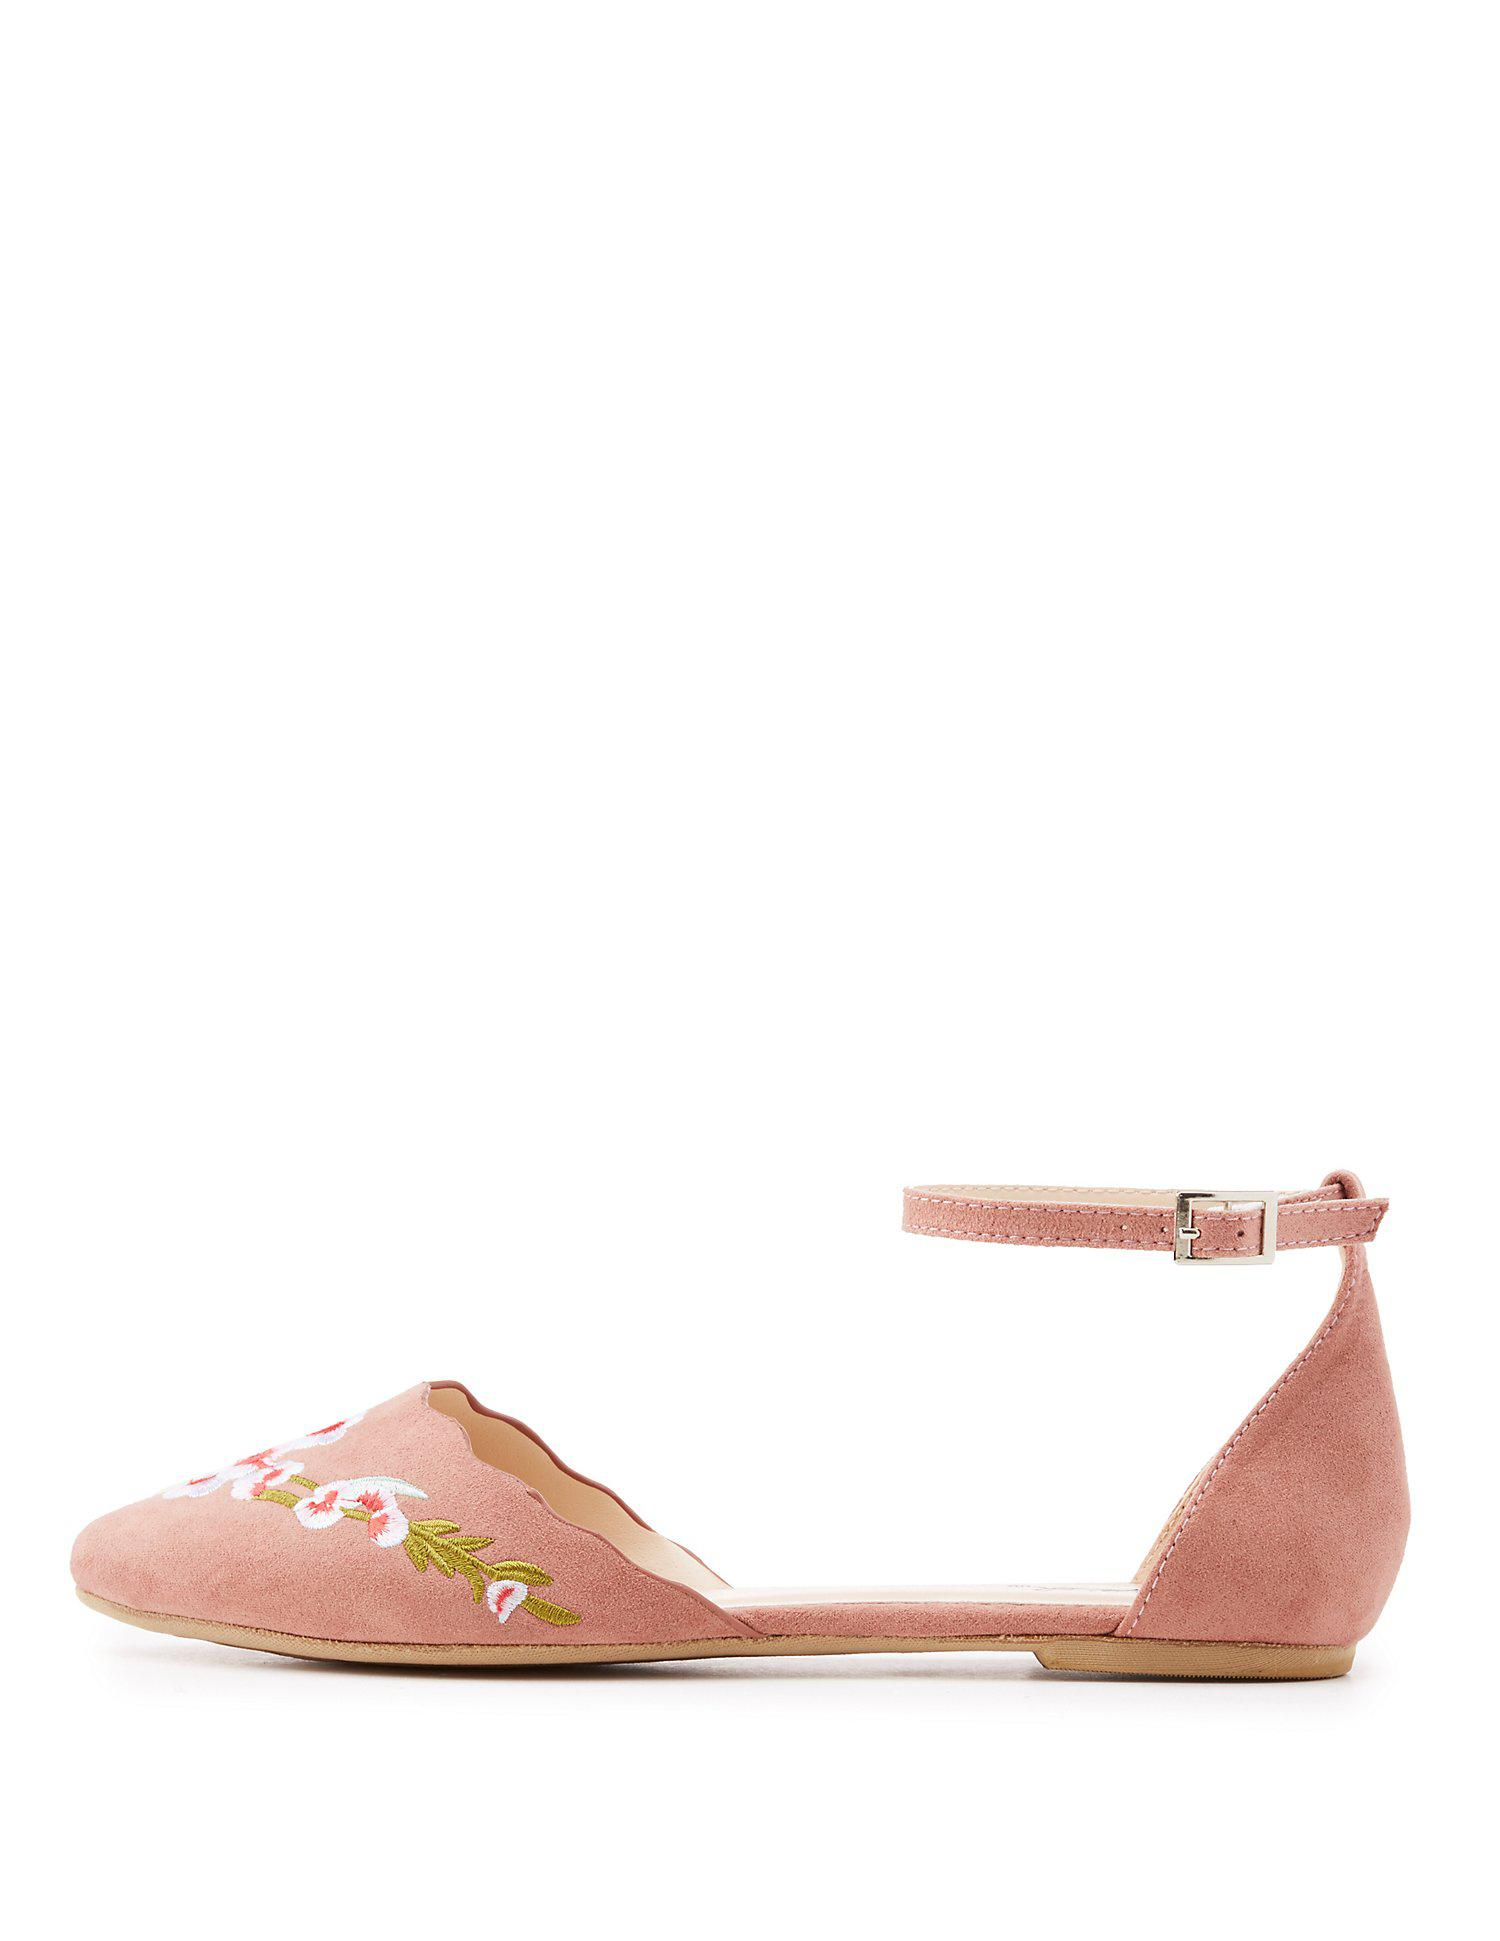 fed2c38dadd Lyst - Charlotte Russe Qupid Embroidered Ankle Strap D orsay Flats ...